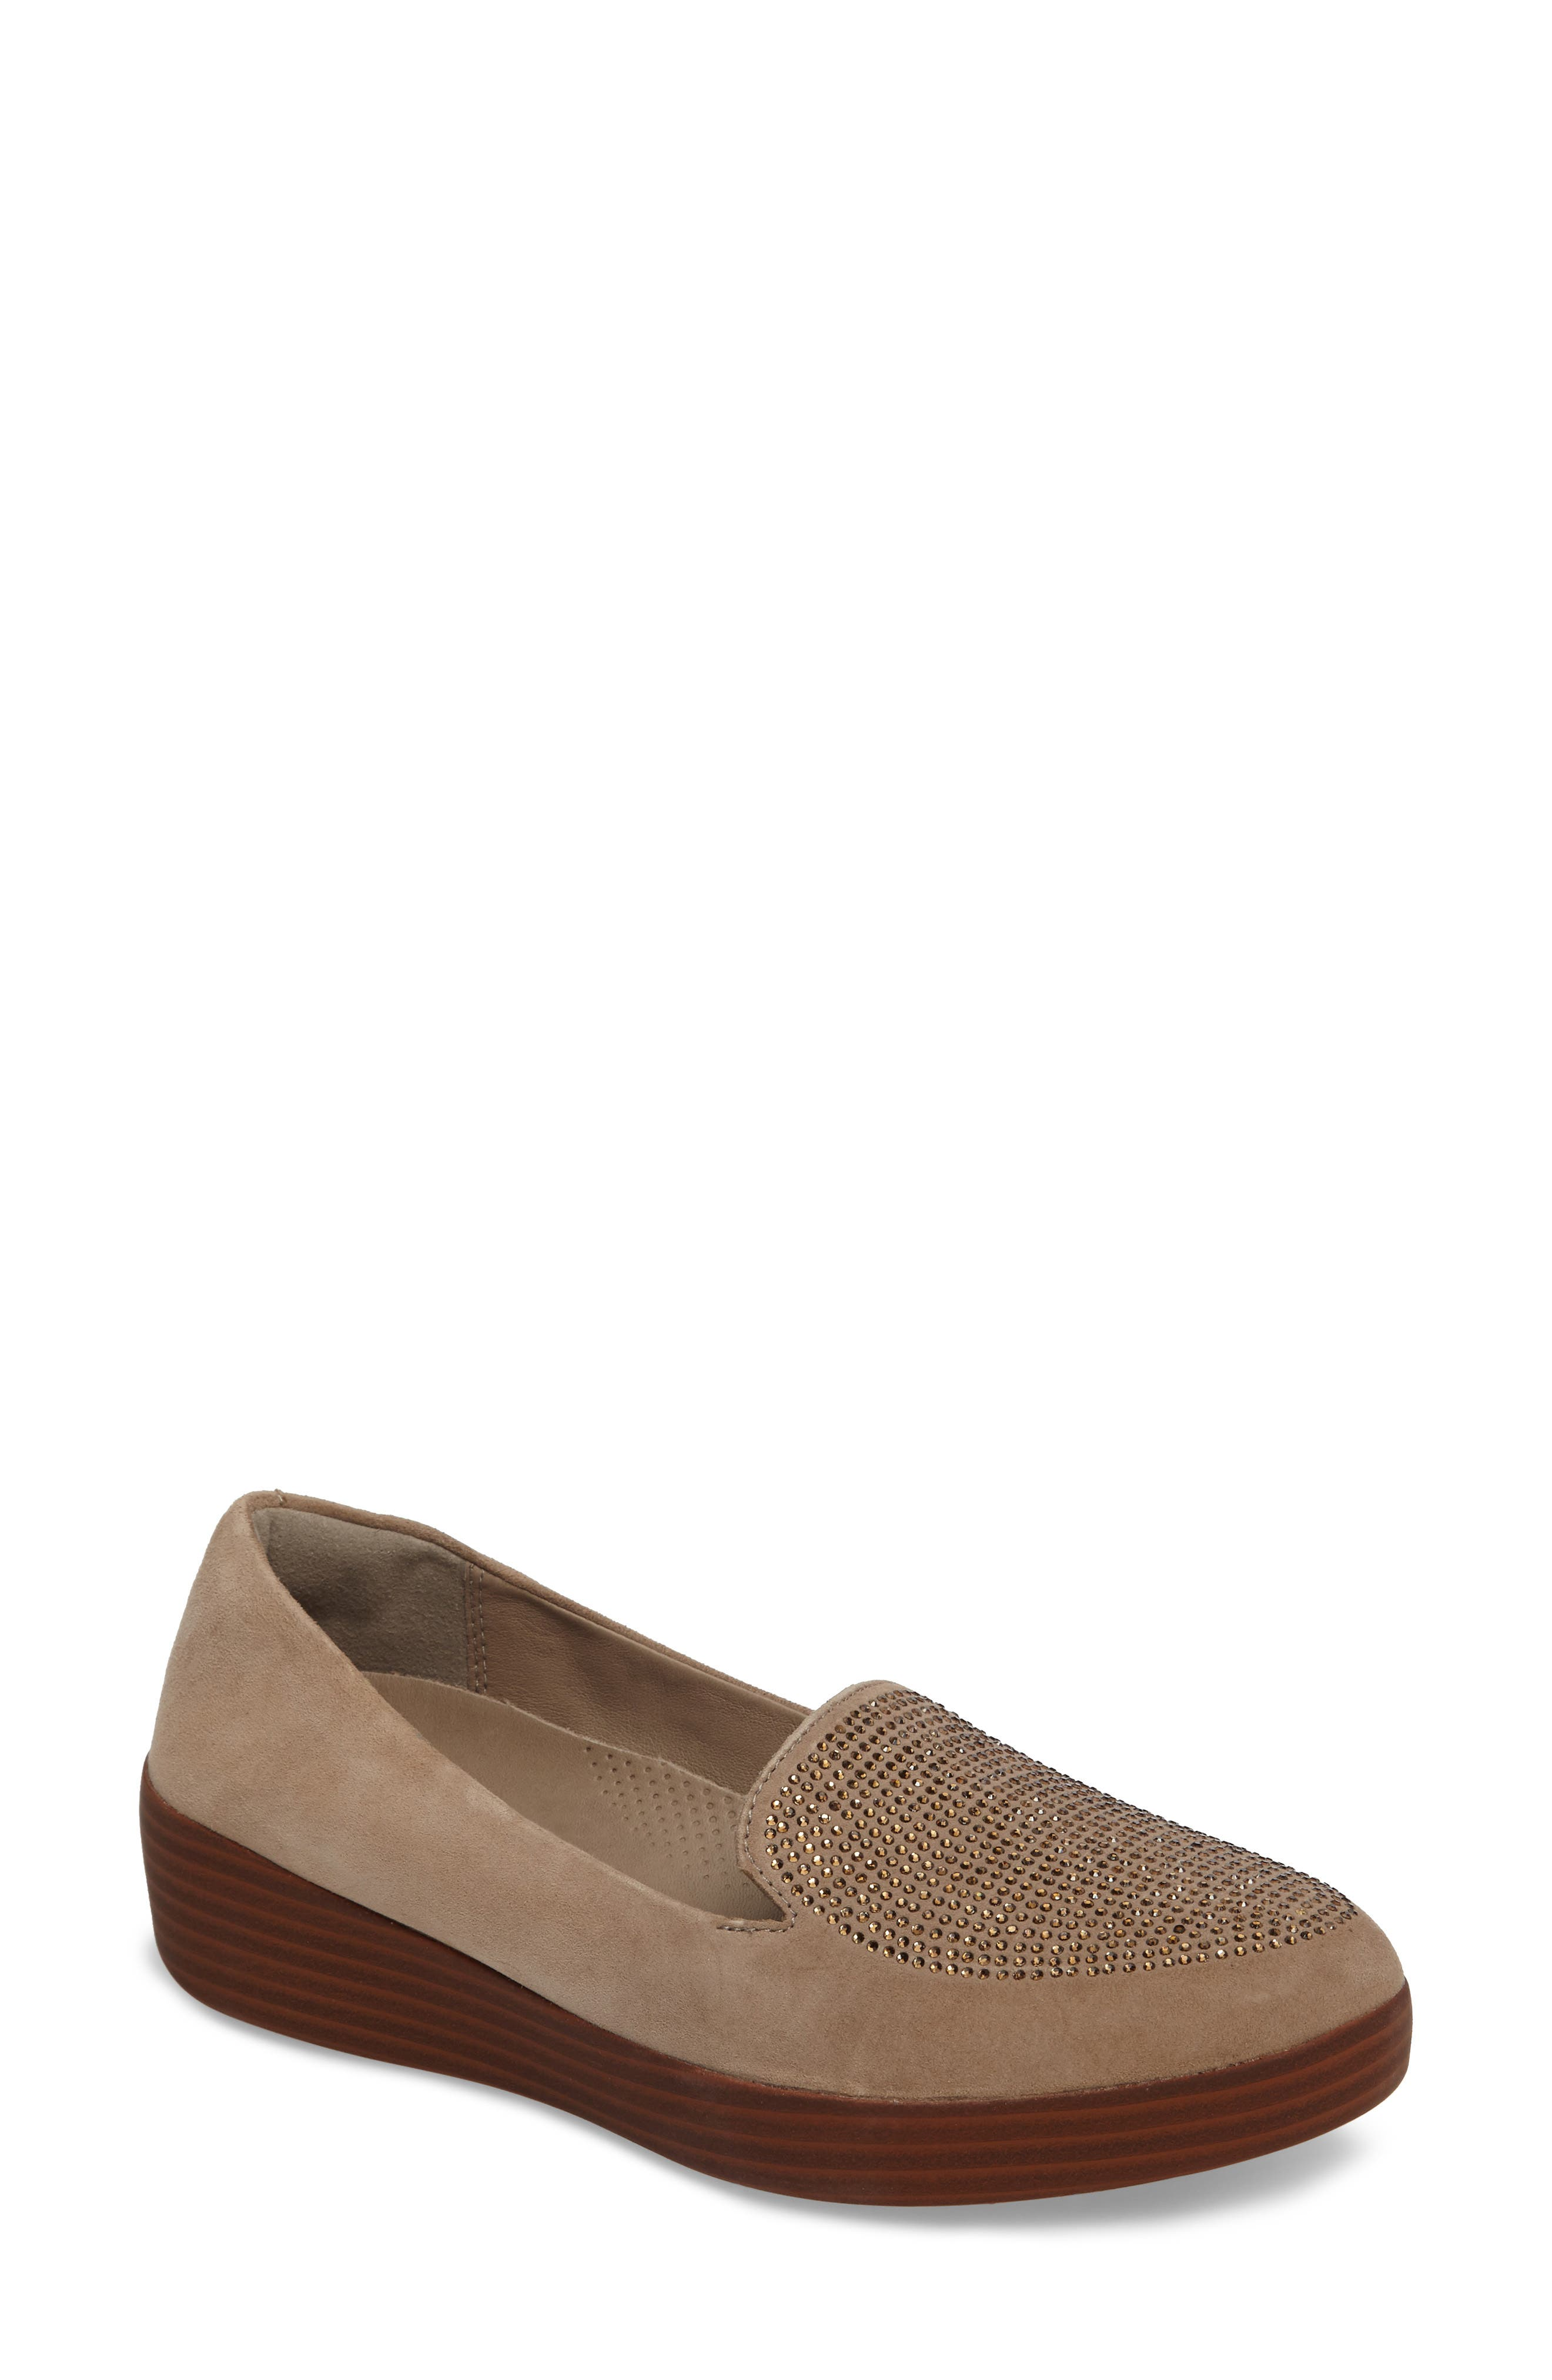 FitFlop Sparkly Sneakerloafer Slip-On (Women)